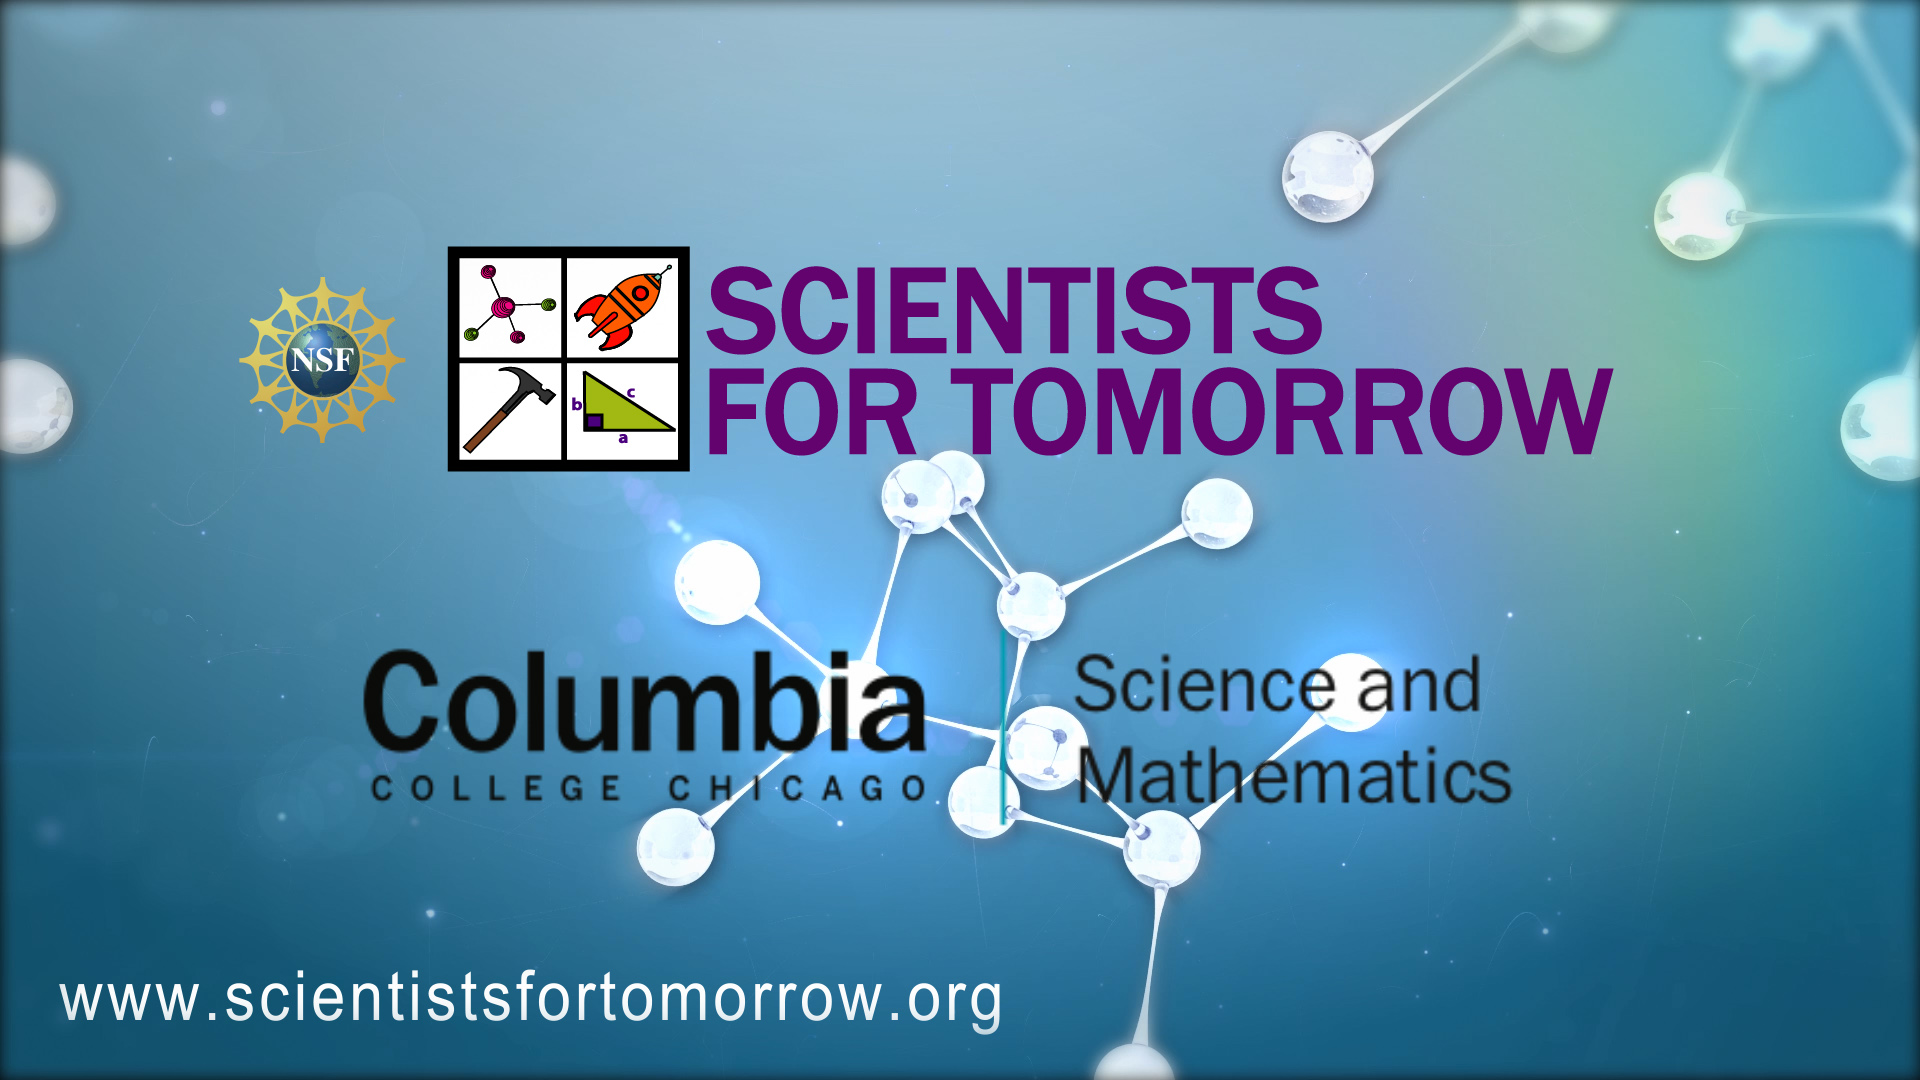 http://www.scientistsfortomorrow.org